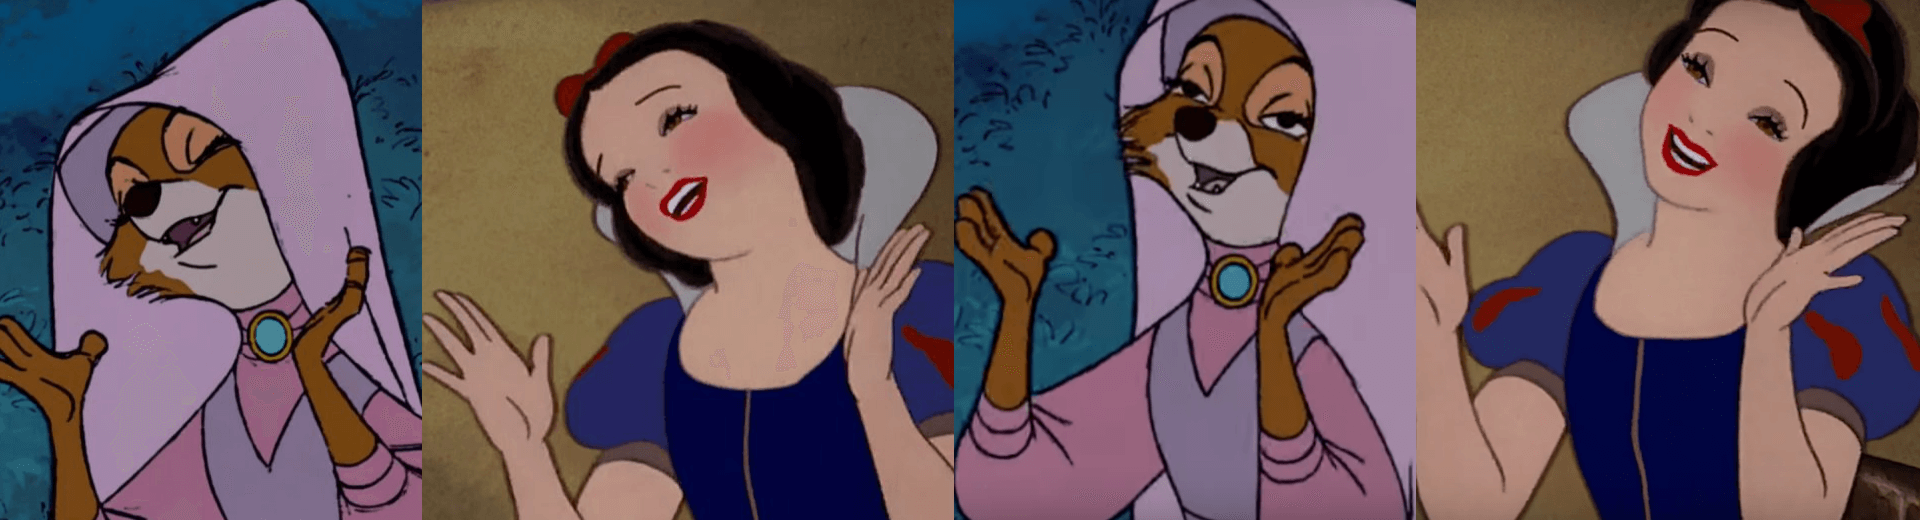 Disney's Snow White and Maid Marian